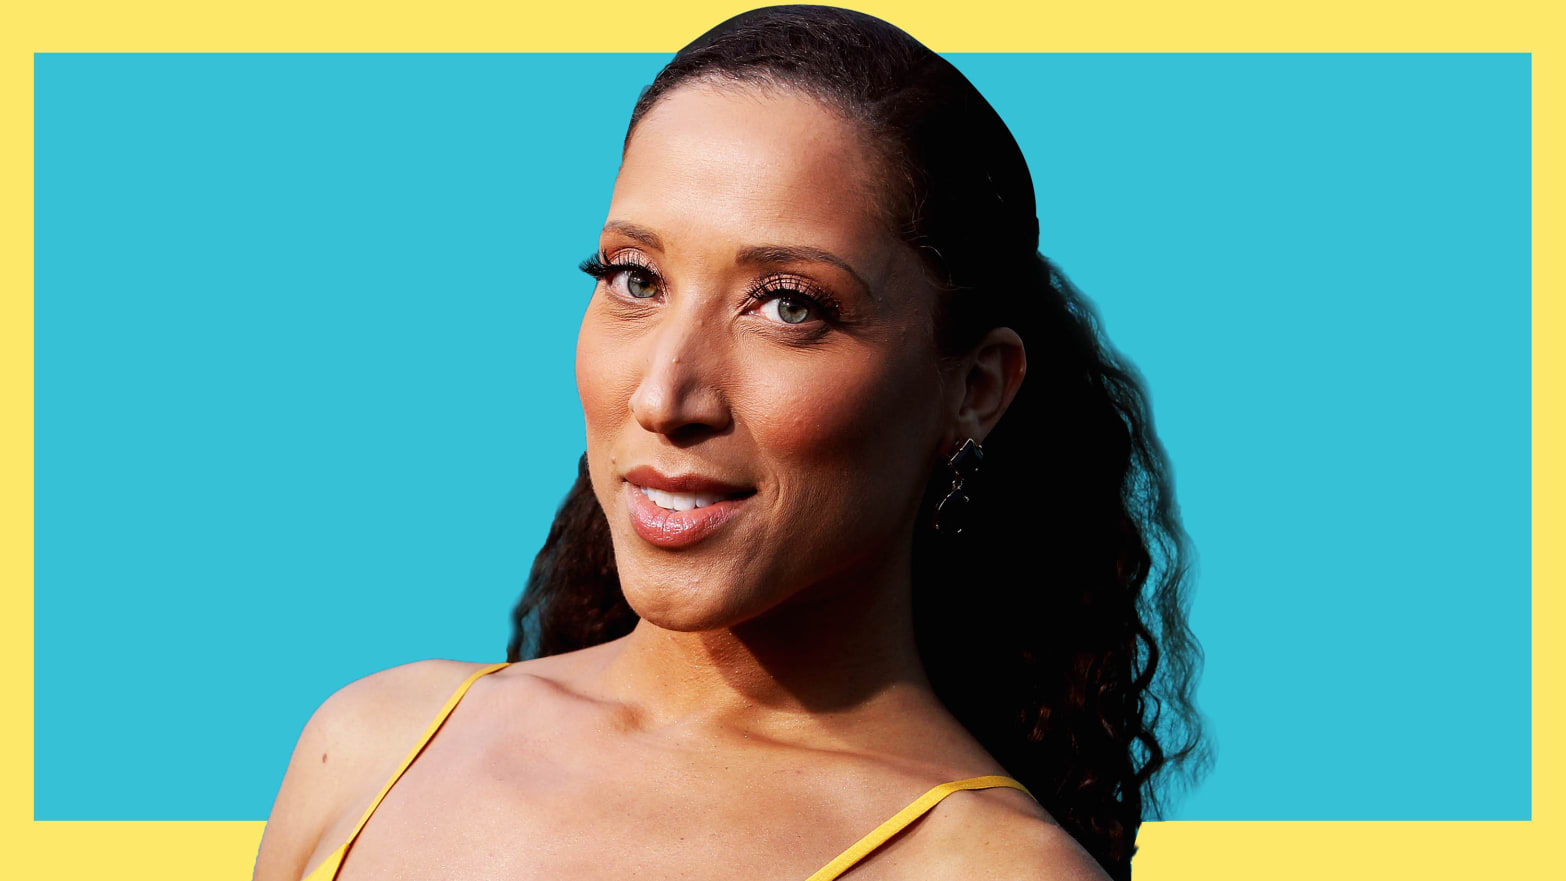 Robin Thede on Defying TV's 'Lie' About Black Women in Comedy With 'A Black Lady Sketch Show'